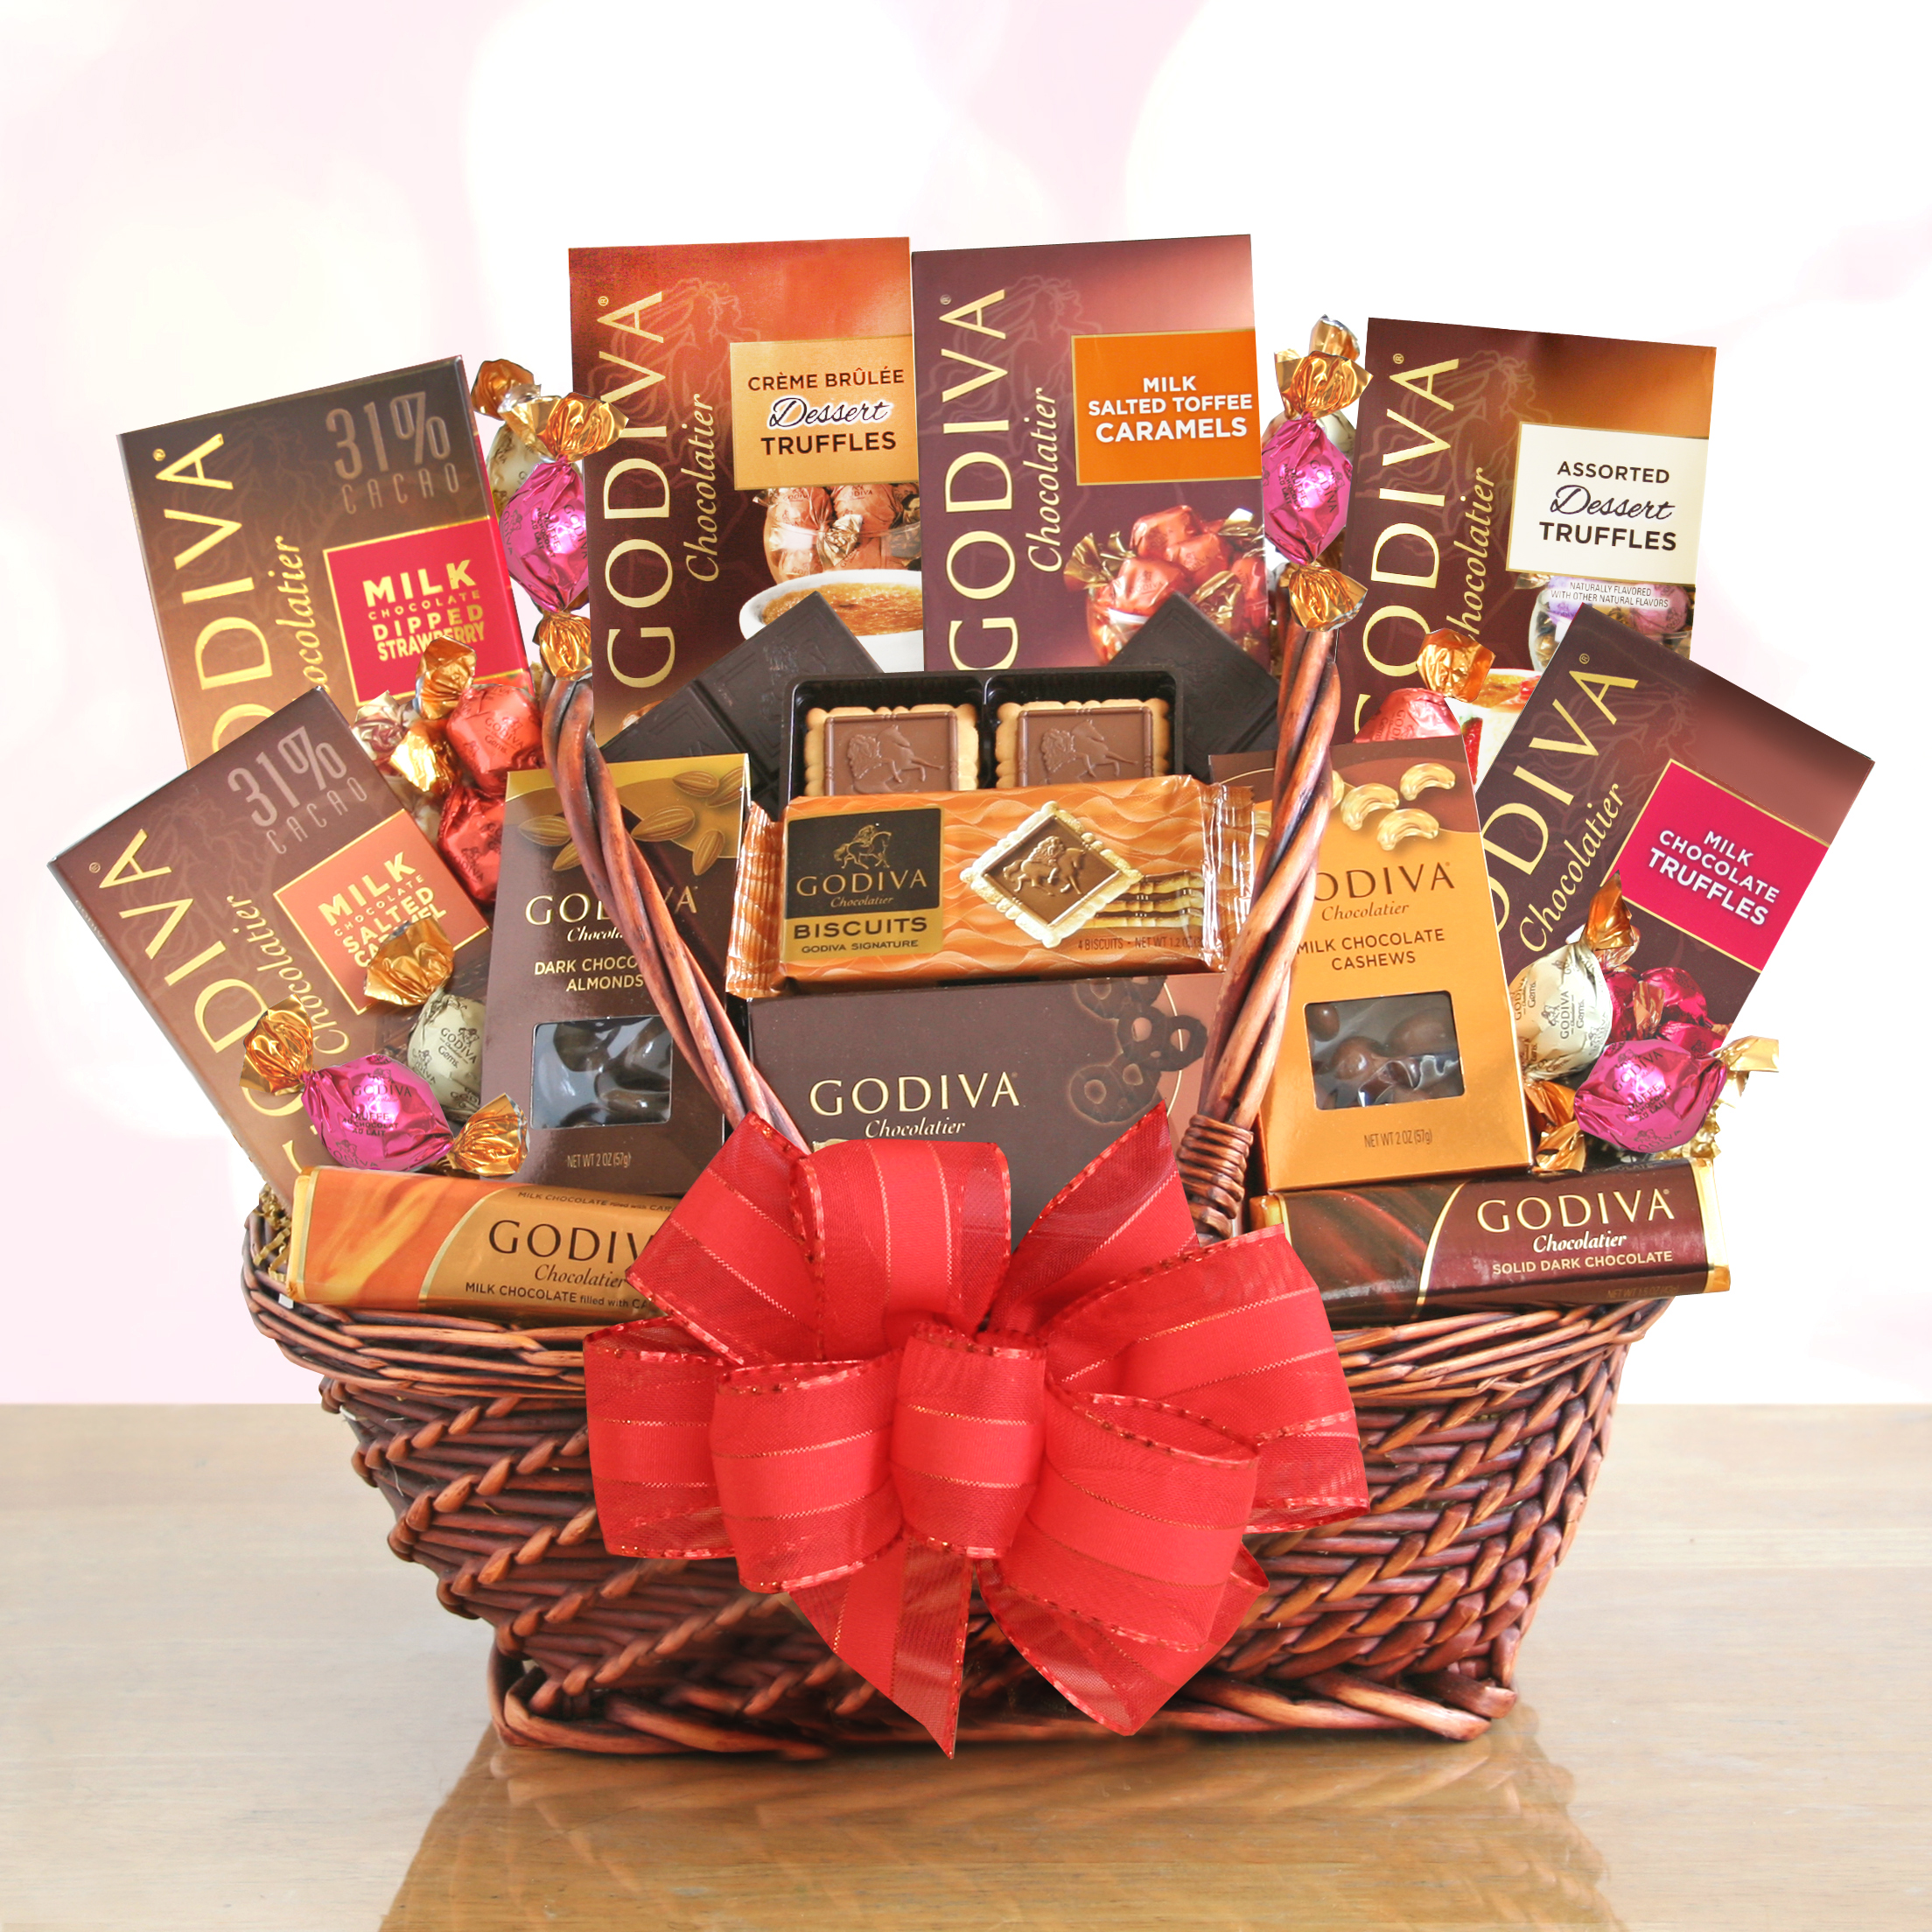 Chocolate Gift Baskets: Indulgent Godiva Gift Basket